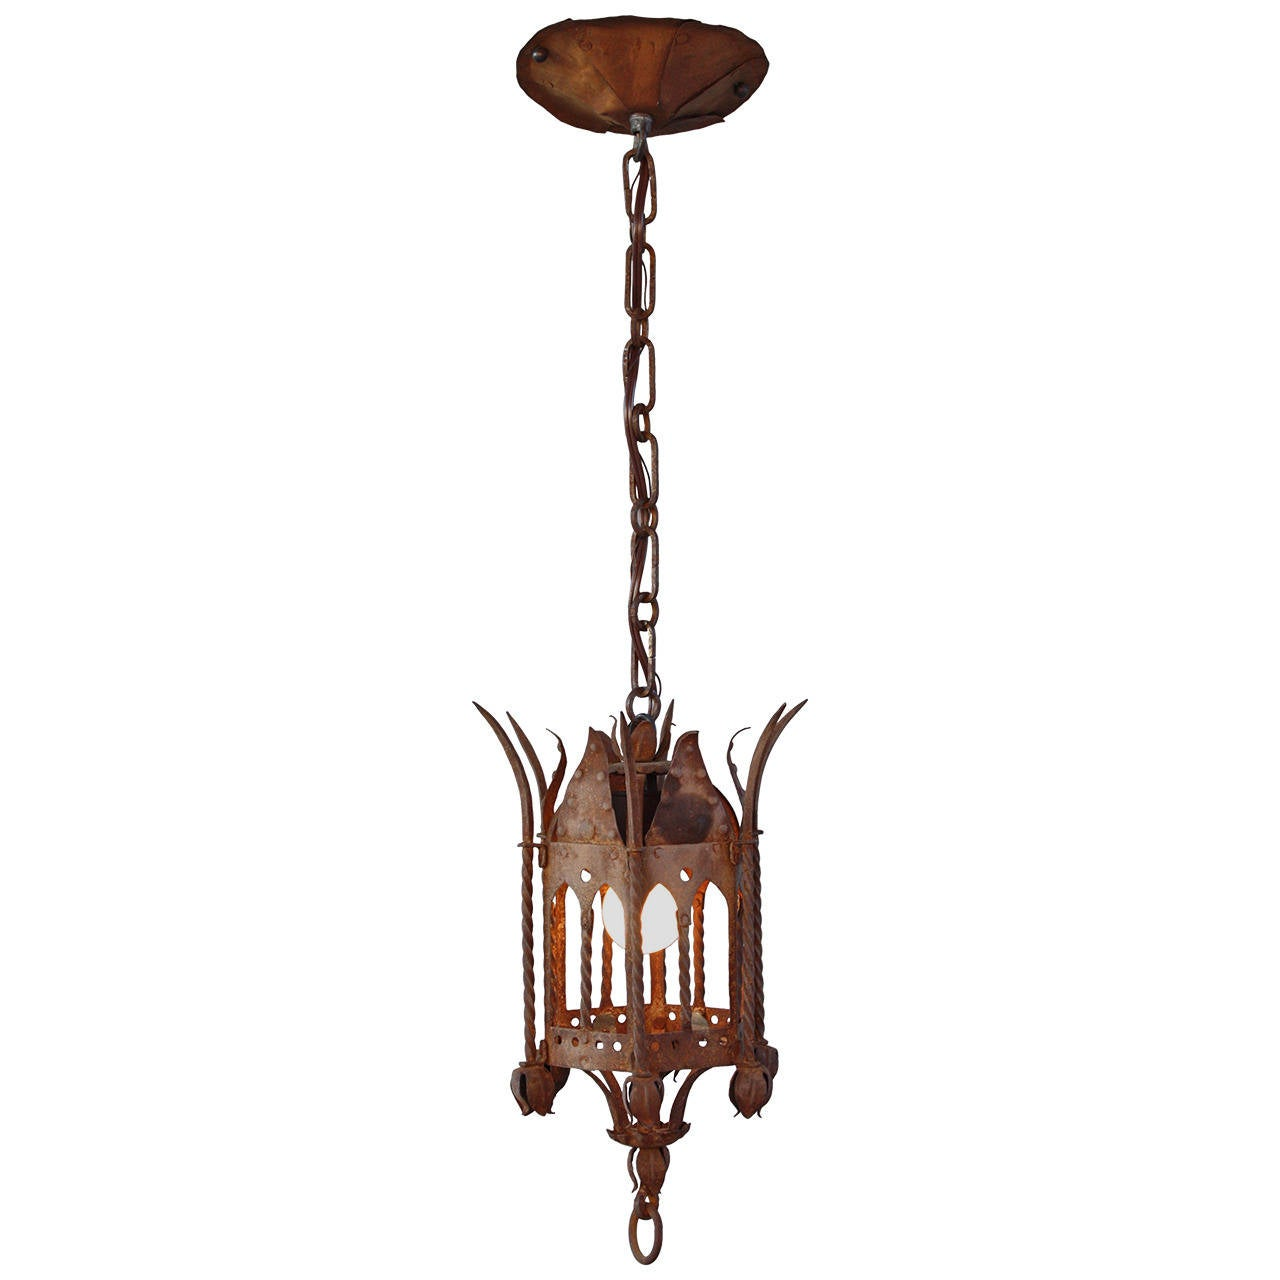 Spanish revival small pendant at 1stdibs for Spanish revival lighting fixtures